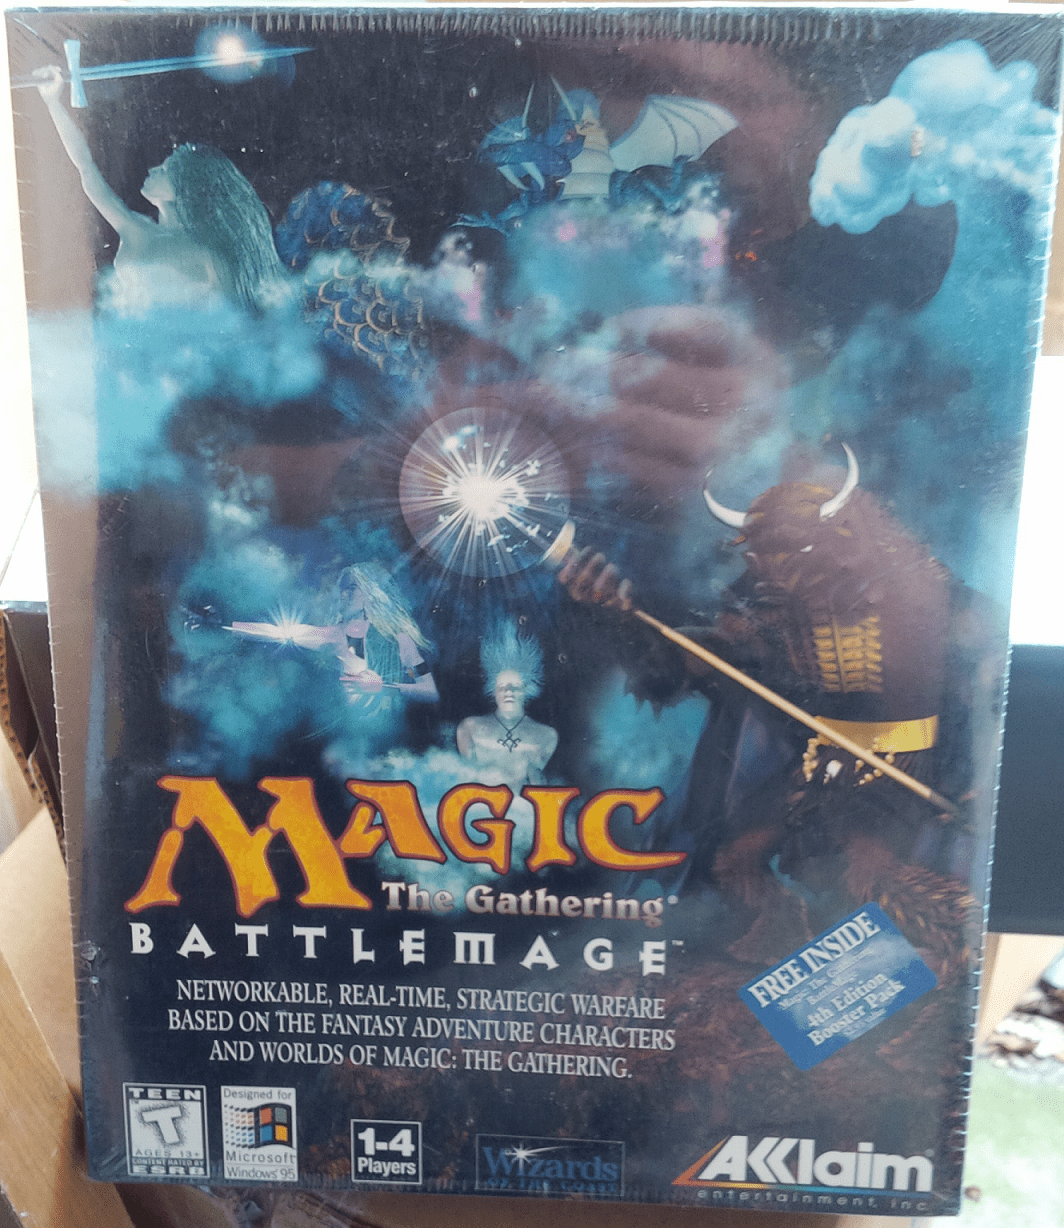 Acclaim Magic the Gathering Battlemage PC Game